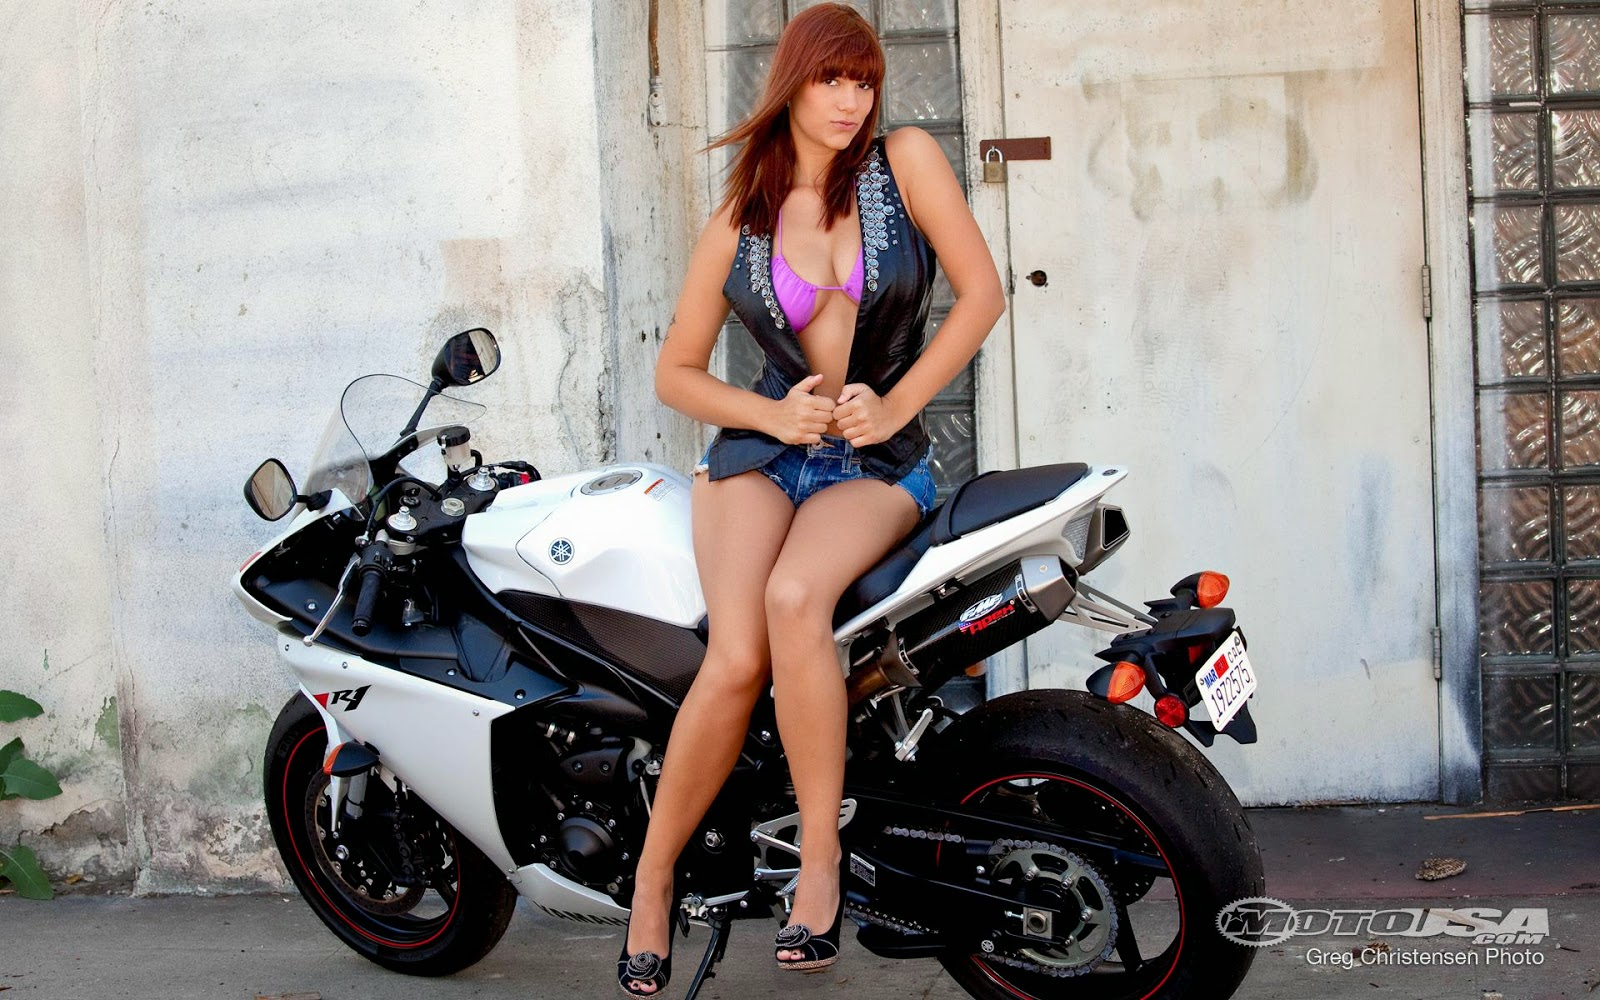 Wallpaper Hd For Mobile Free Download Girl Sexy Girls With Sportbike Wallpapers Most Beautiful